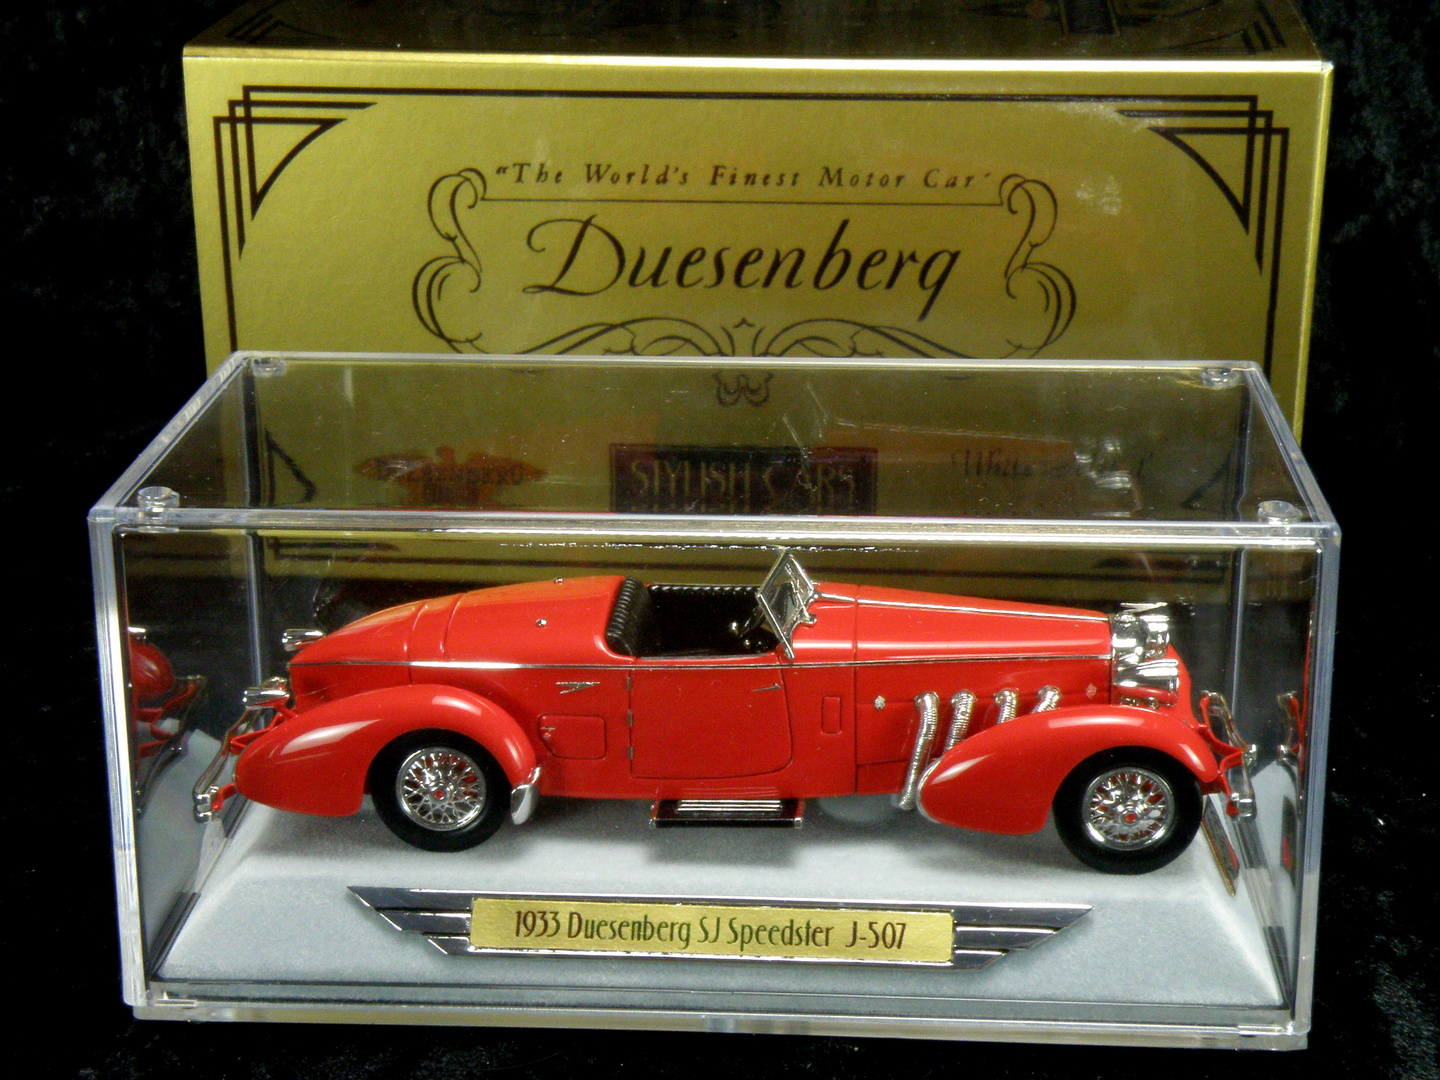 Duesenberg - Collection - STYLISH CARS